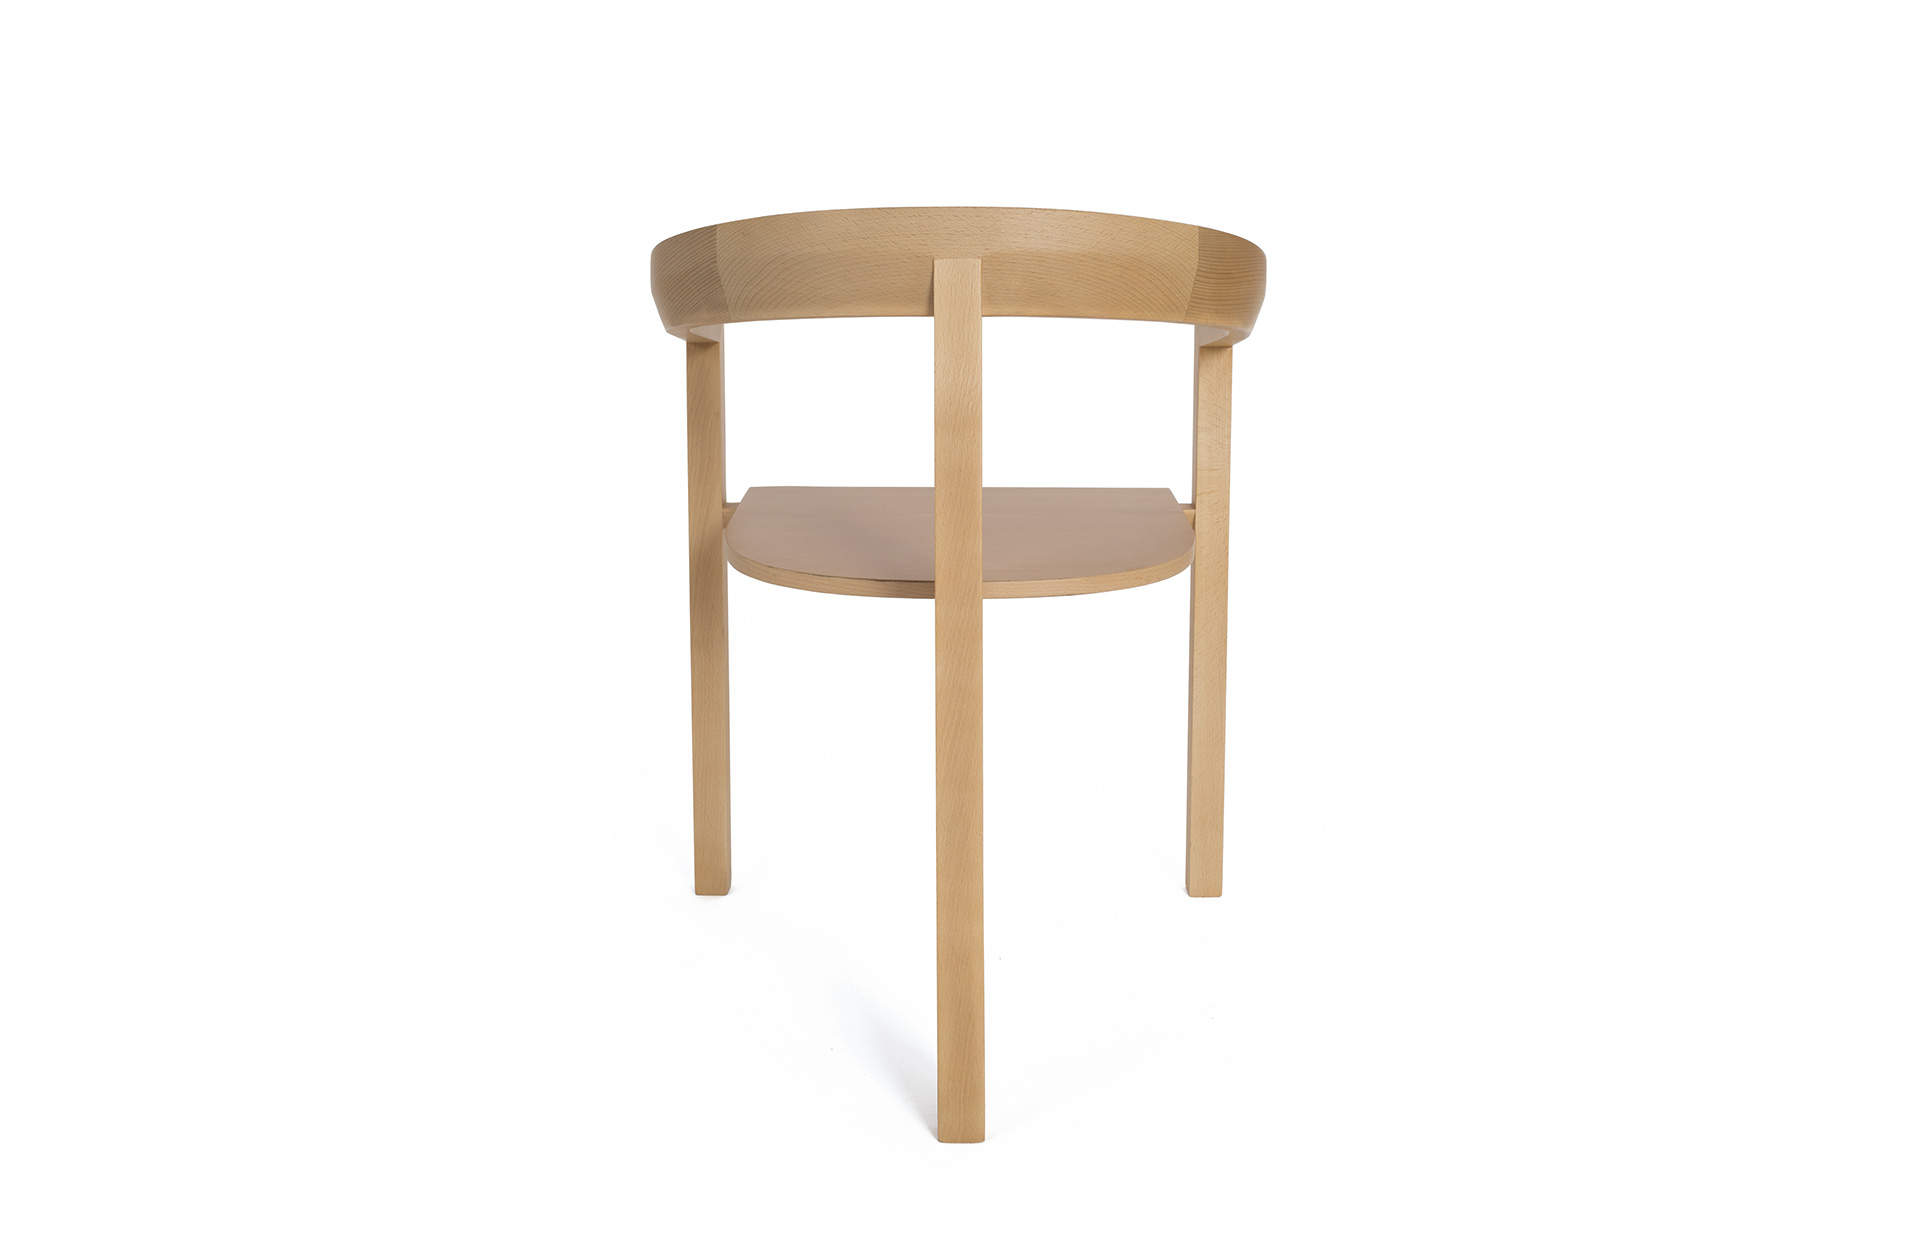 Back View Dining Chair - DESIGN BY MIGUEL SOEIRO